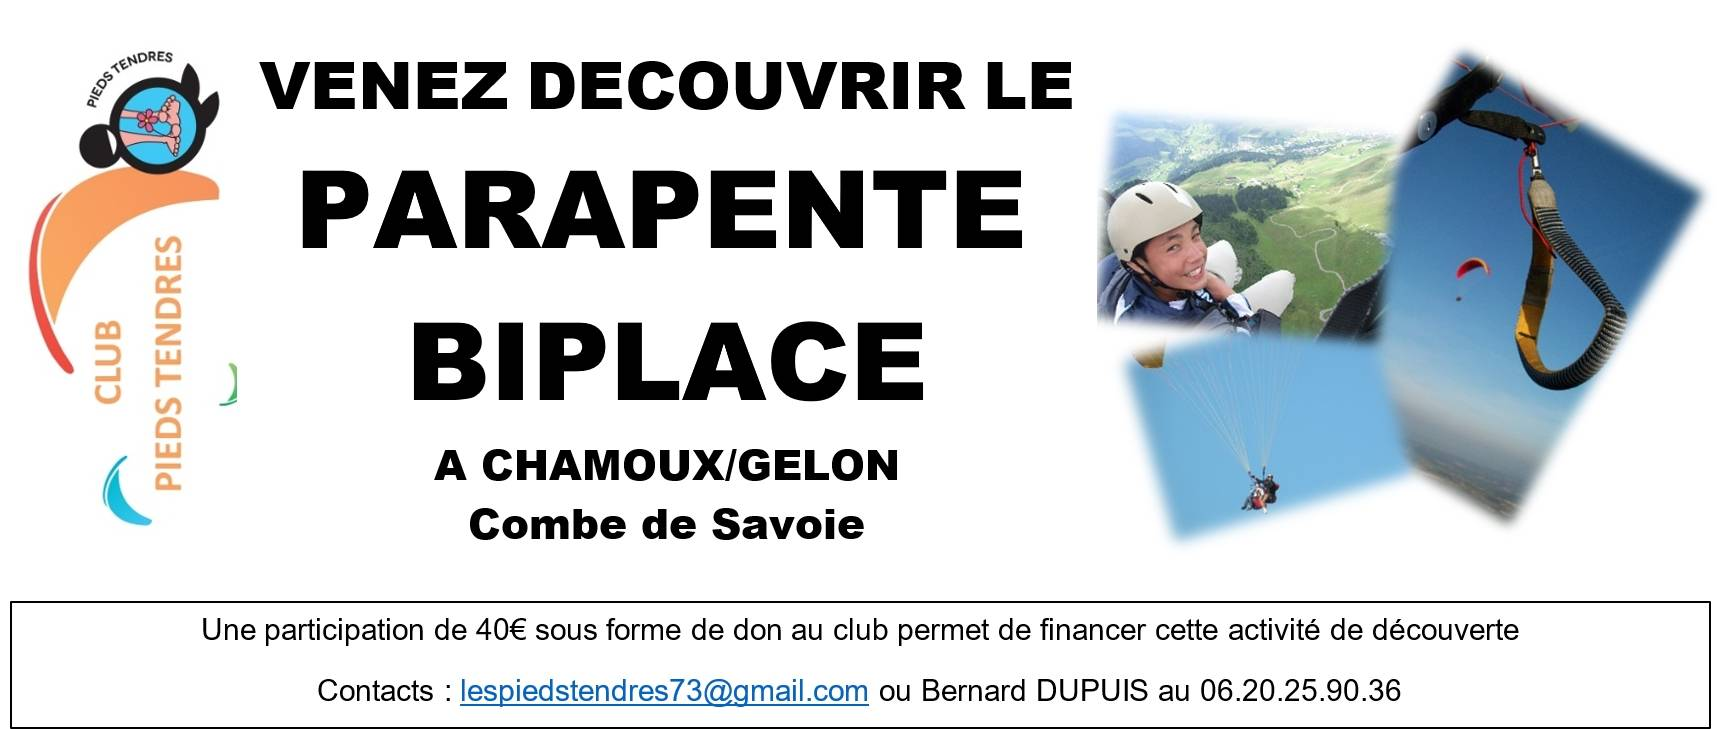 Decouverte biplace